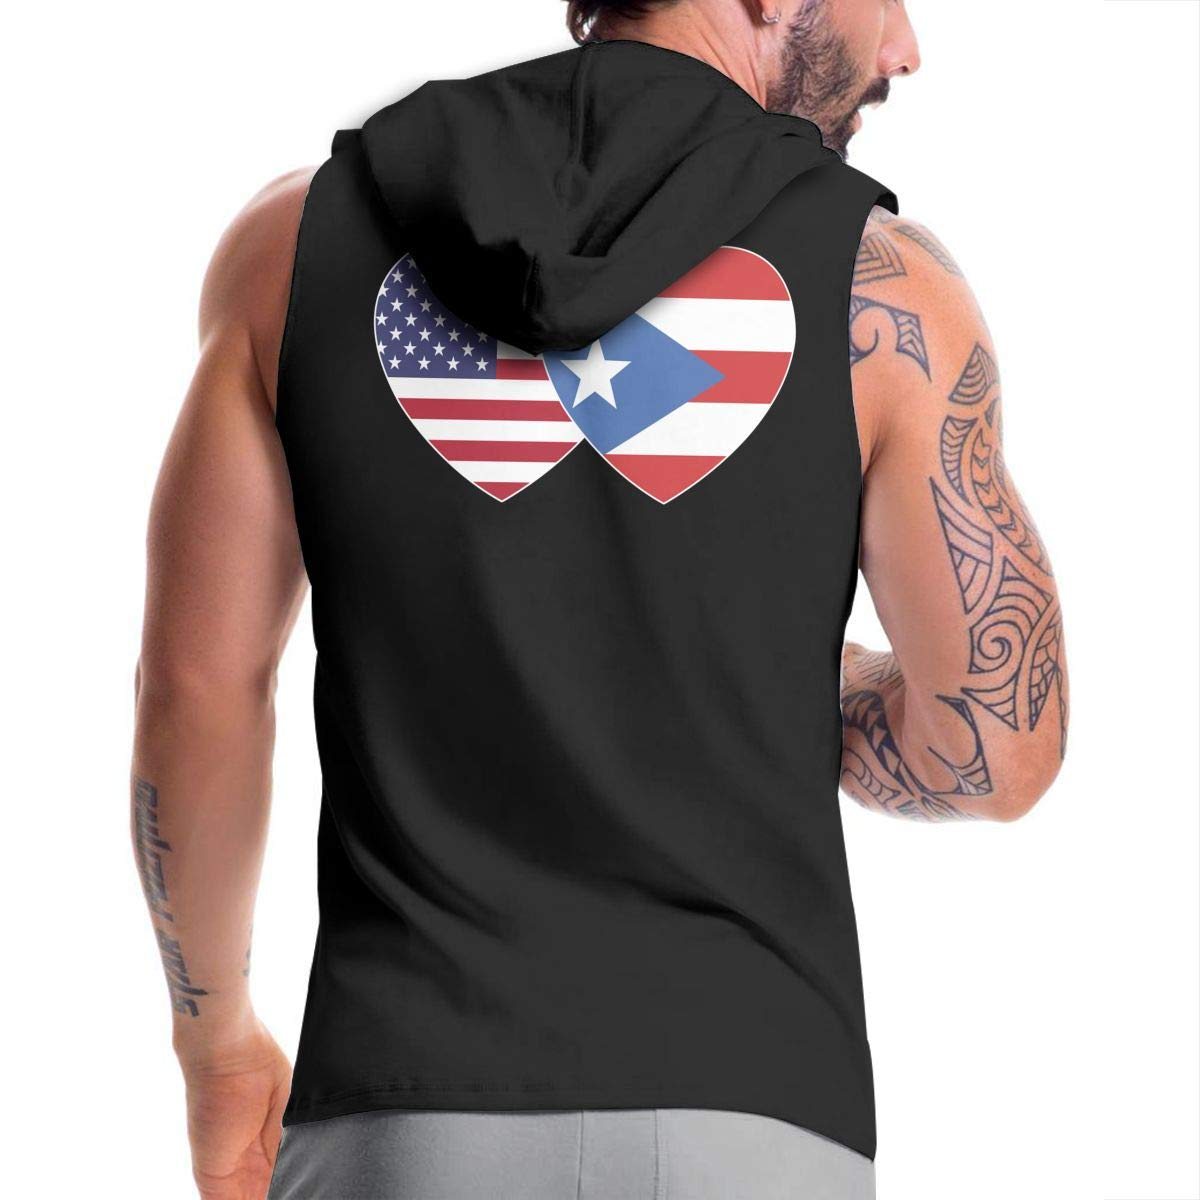 Puerto RICO USA Flag Twin Heart Mens Sleeveless Full Zip-Up Hooded Sweater Active Workout Vest Tank